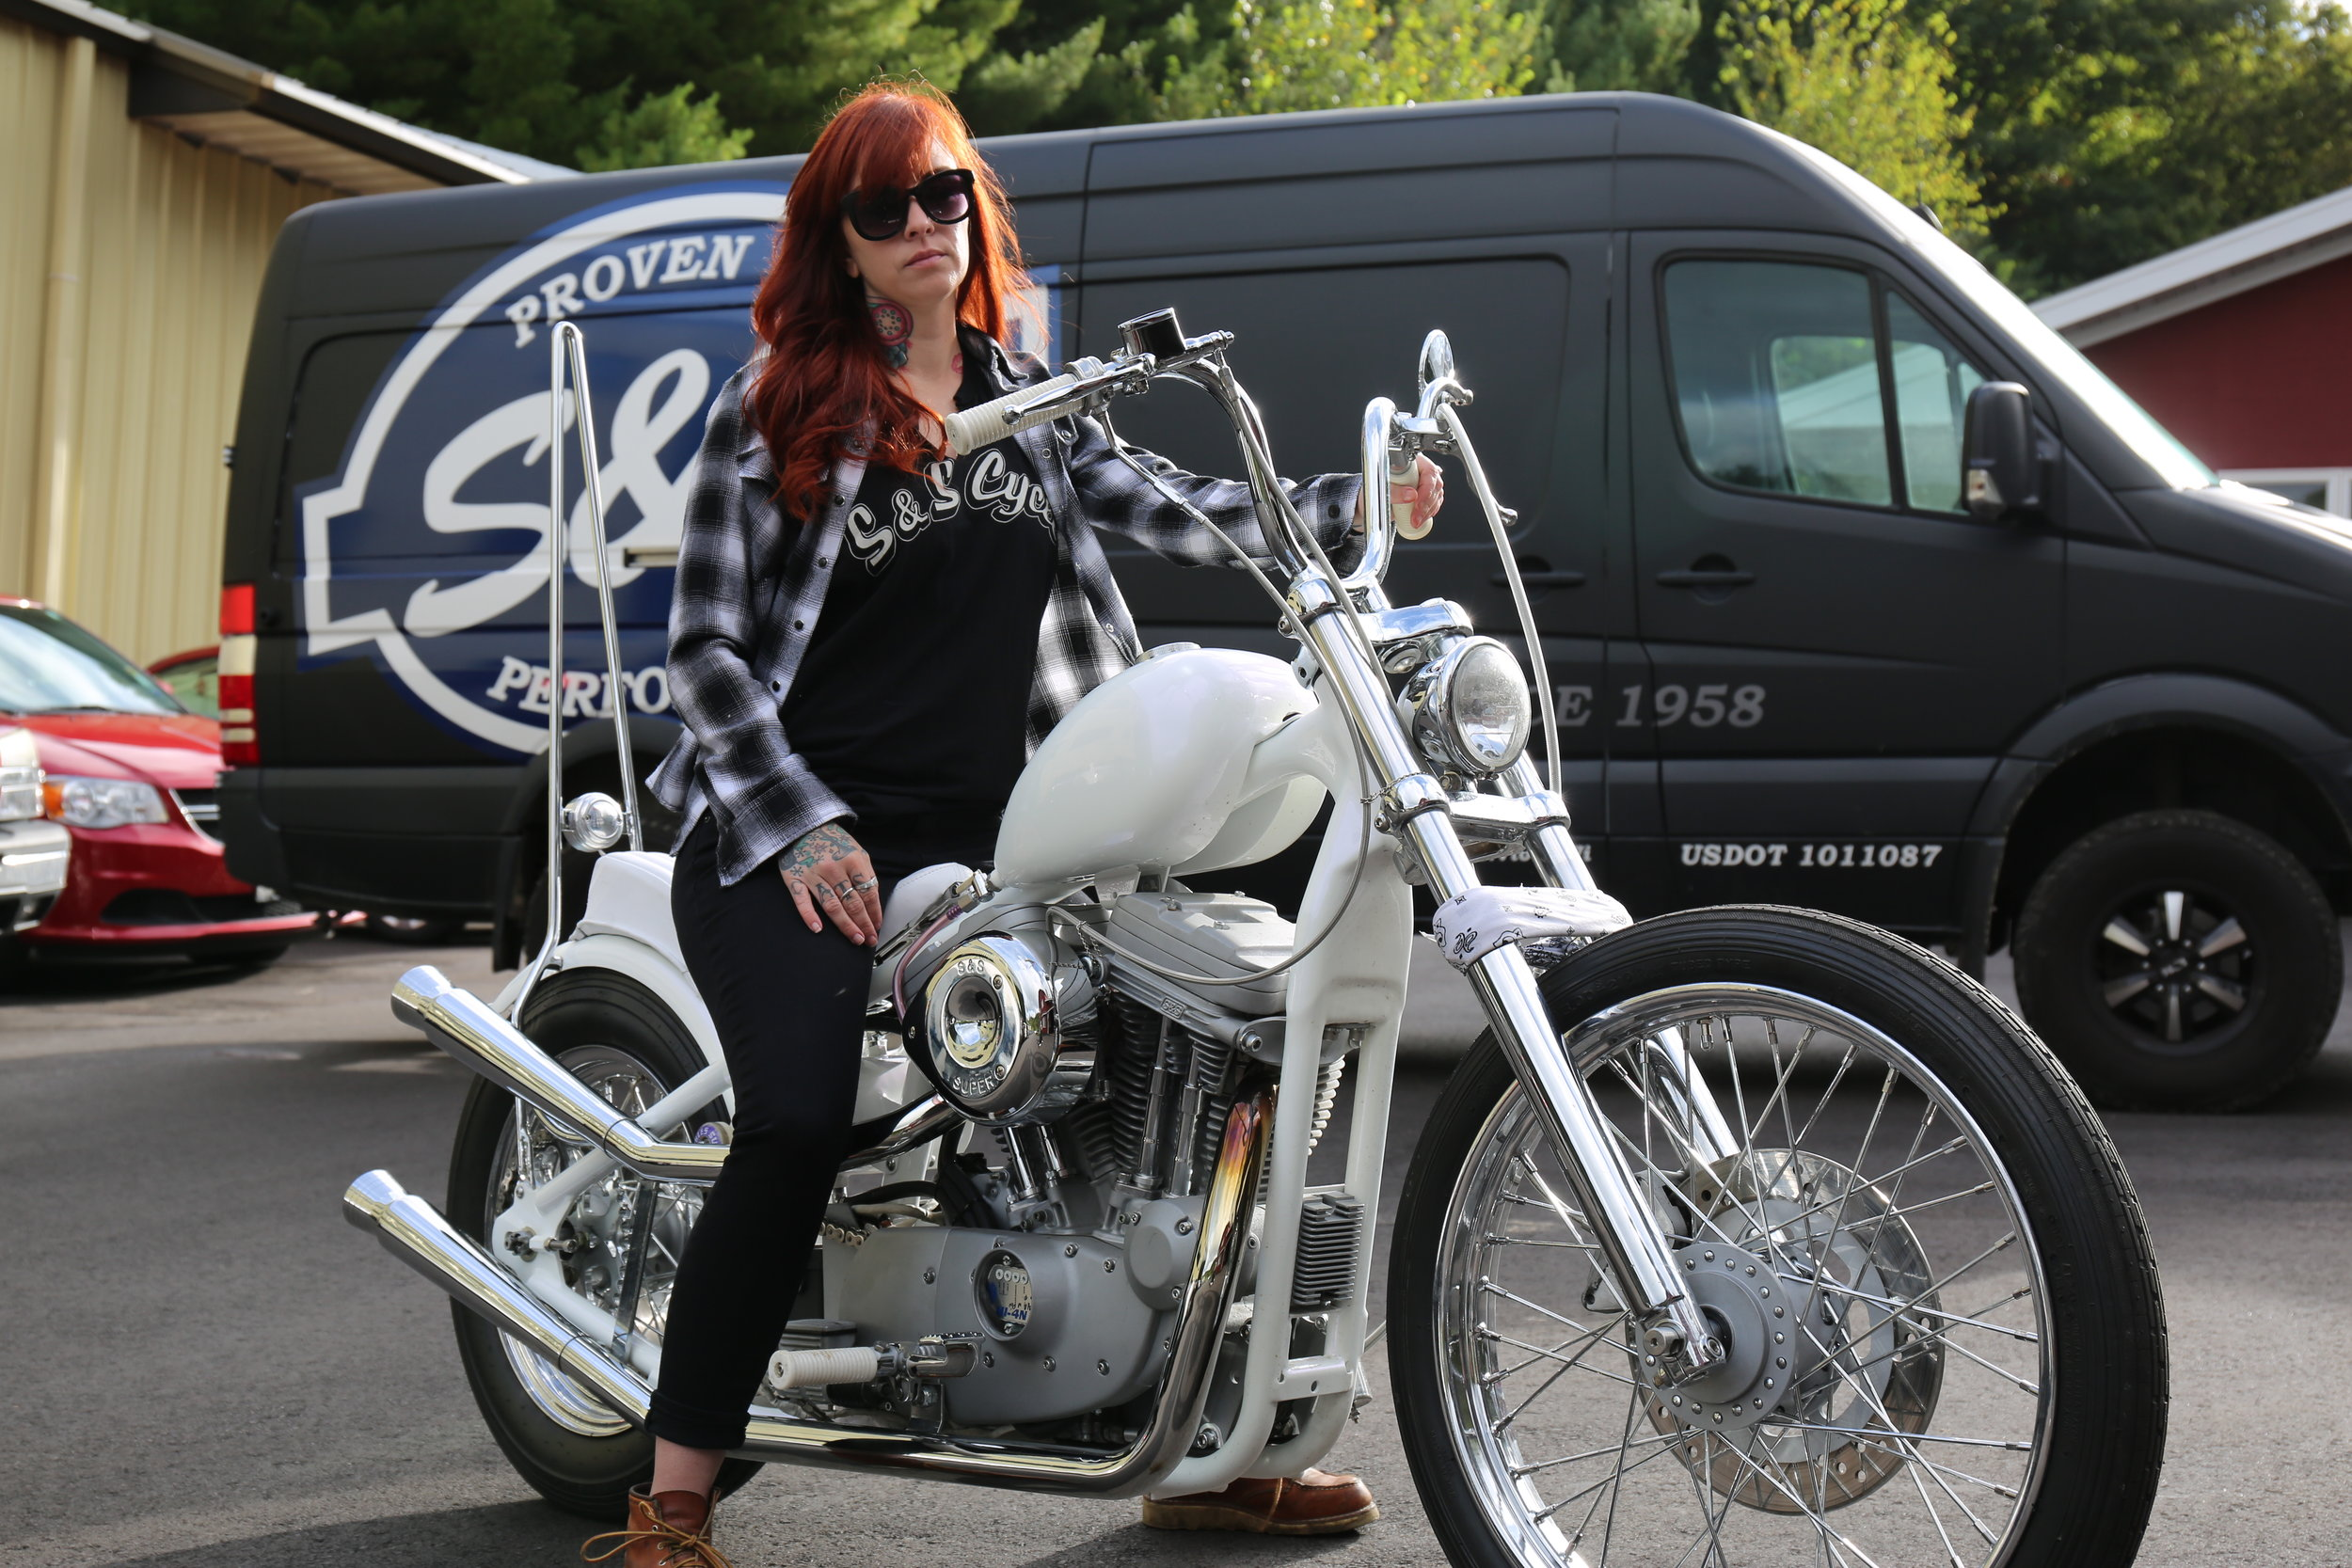 Look for Savannah on her chopper scoot. Savannah has been coming to Babes Ride Out since it's inception (2013).